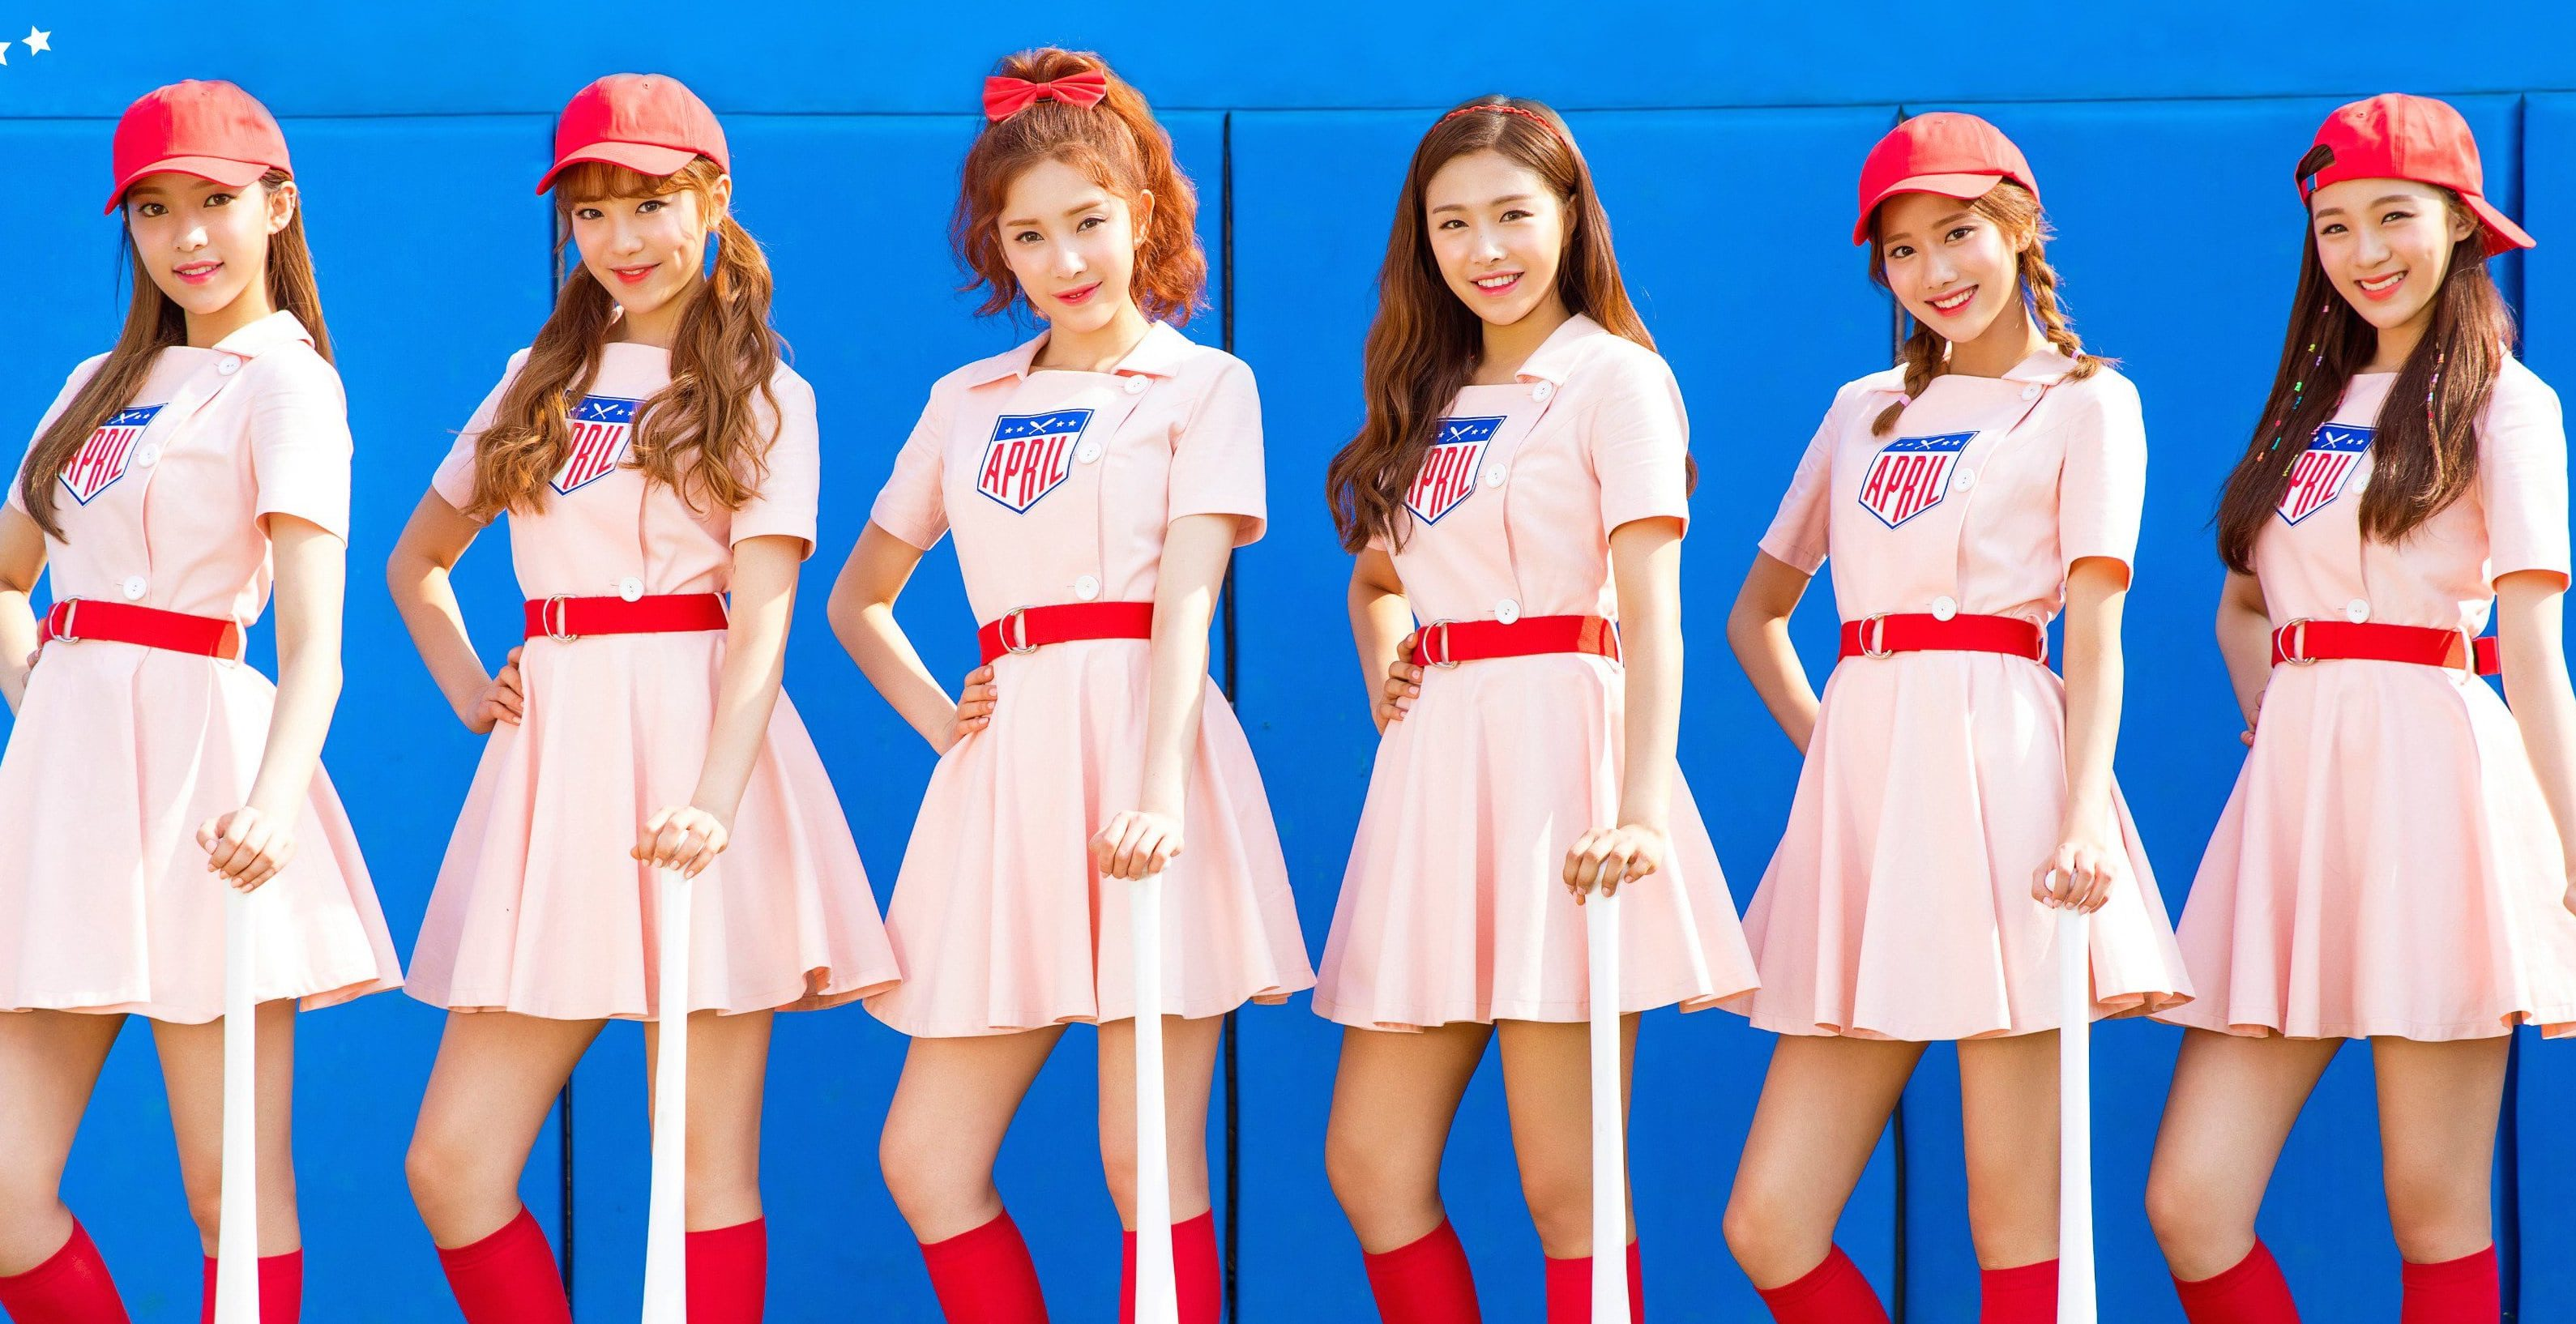 APRIL Confirmed To Join September Comeback Lineup